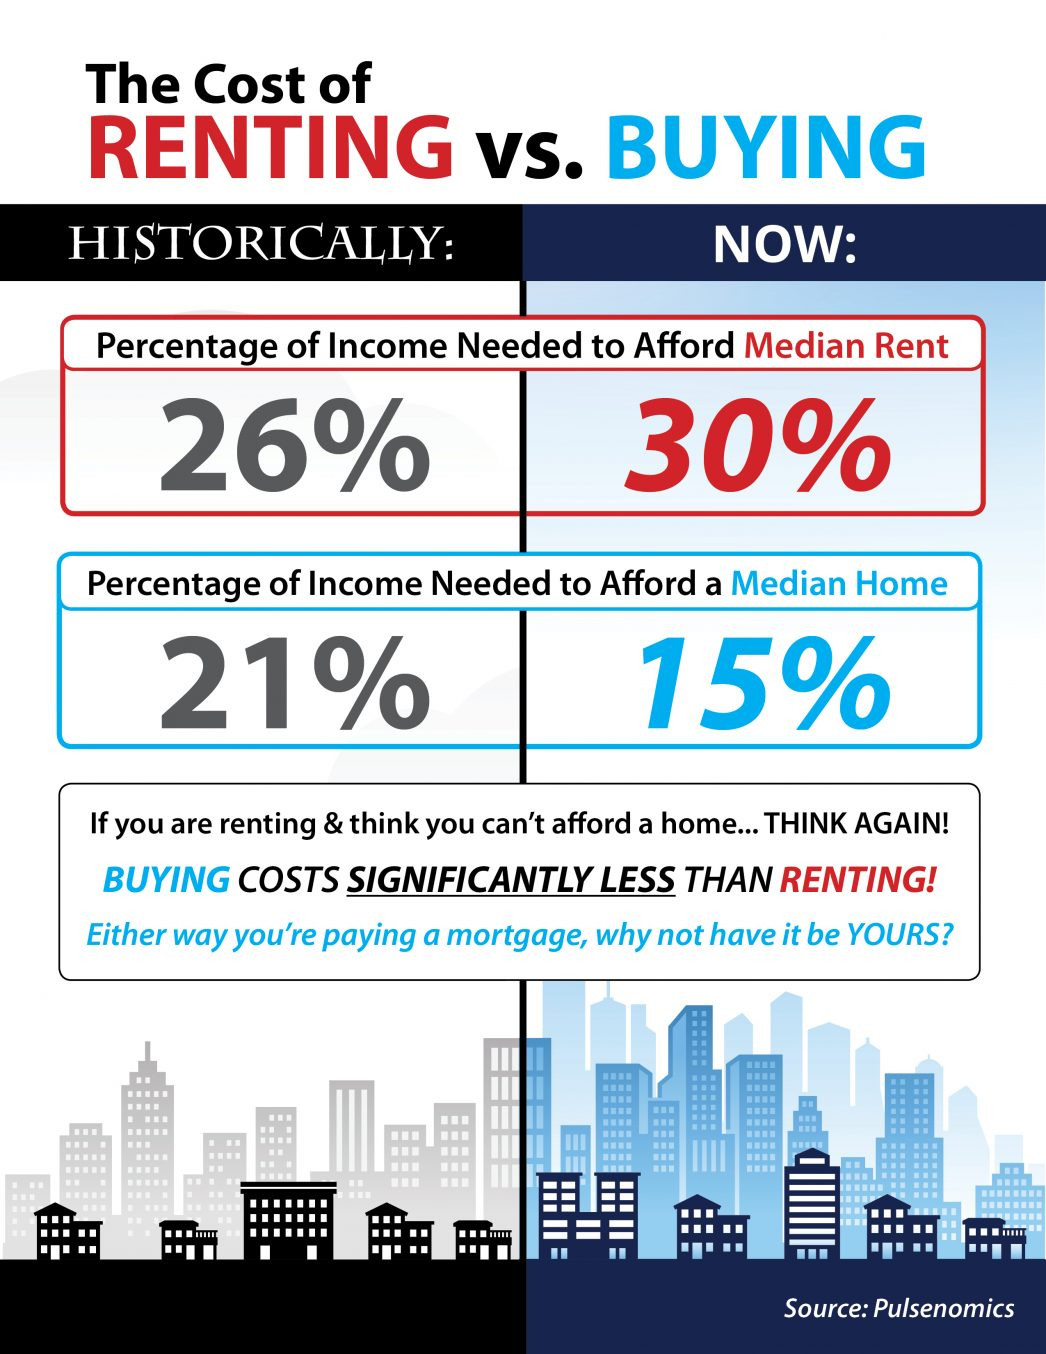 Do You Know the Real Cost of Renting vs. Buying?